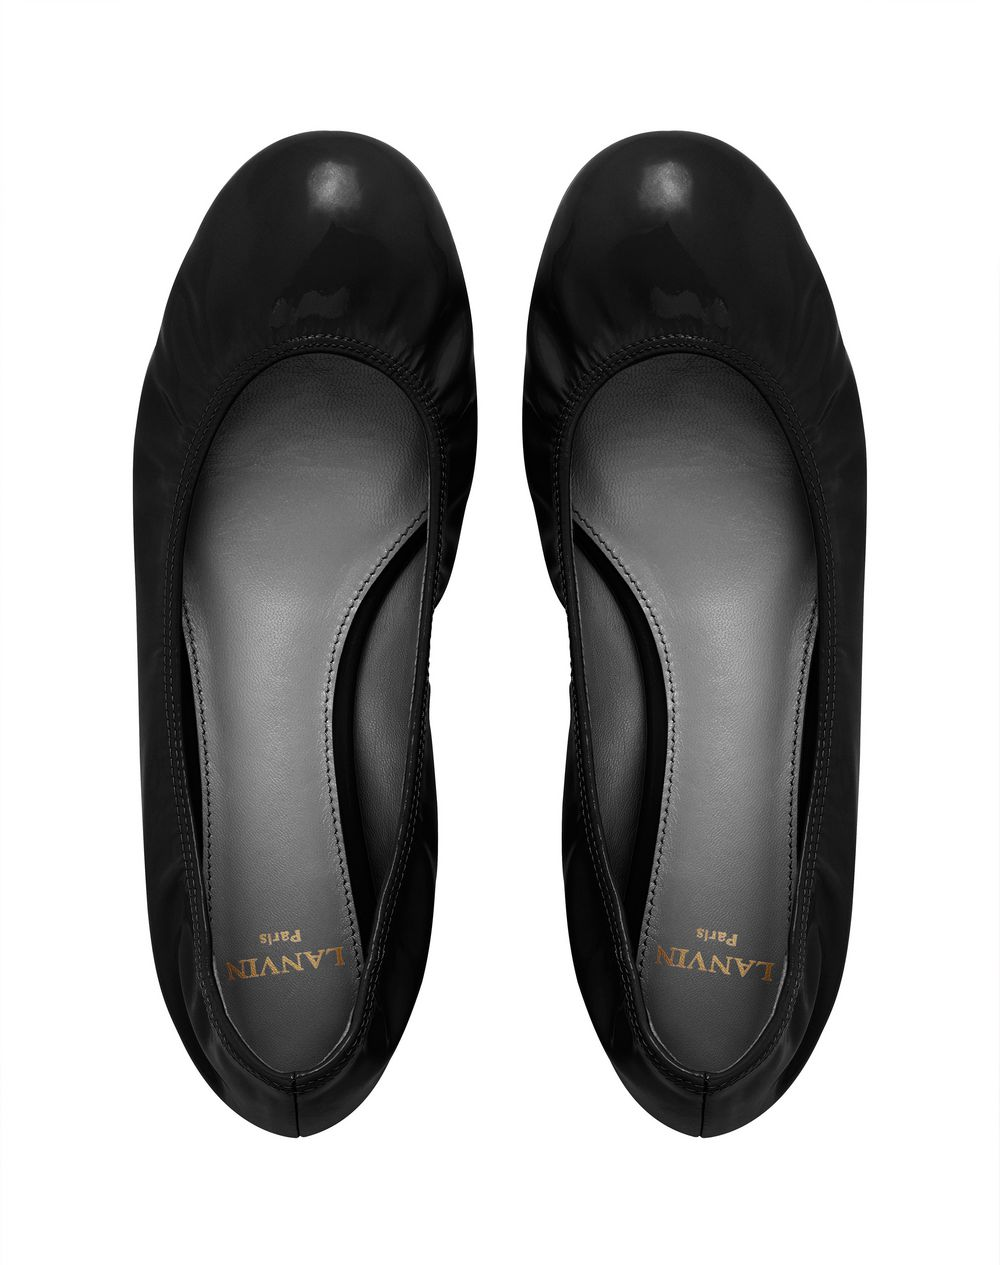 CLASSIC BLACK PATENT LEATHER BALLET FLAT - Lanvin